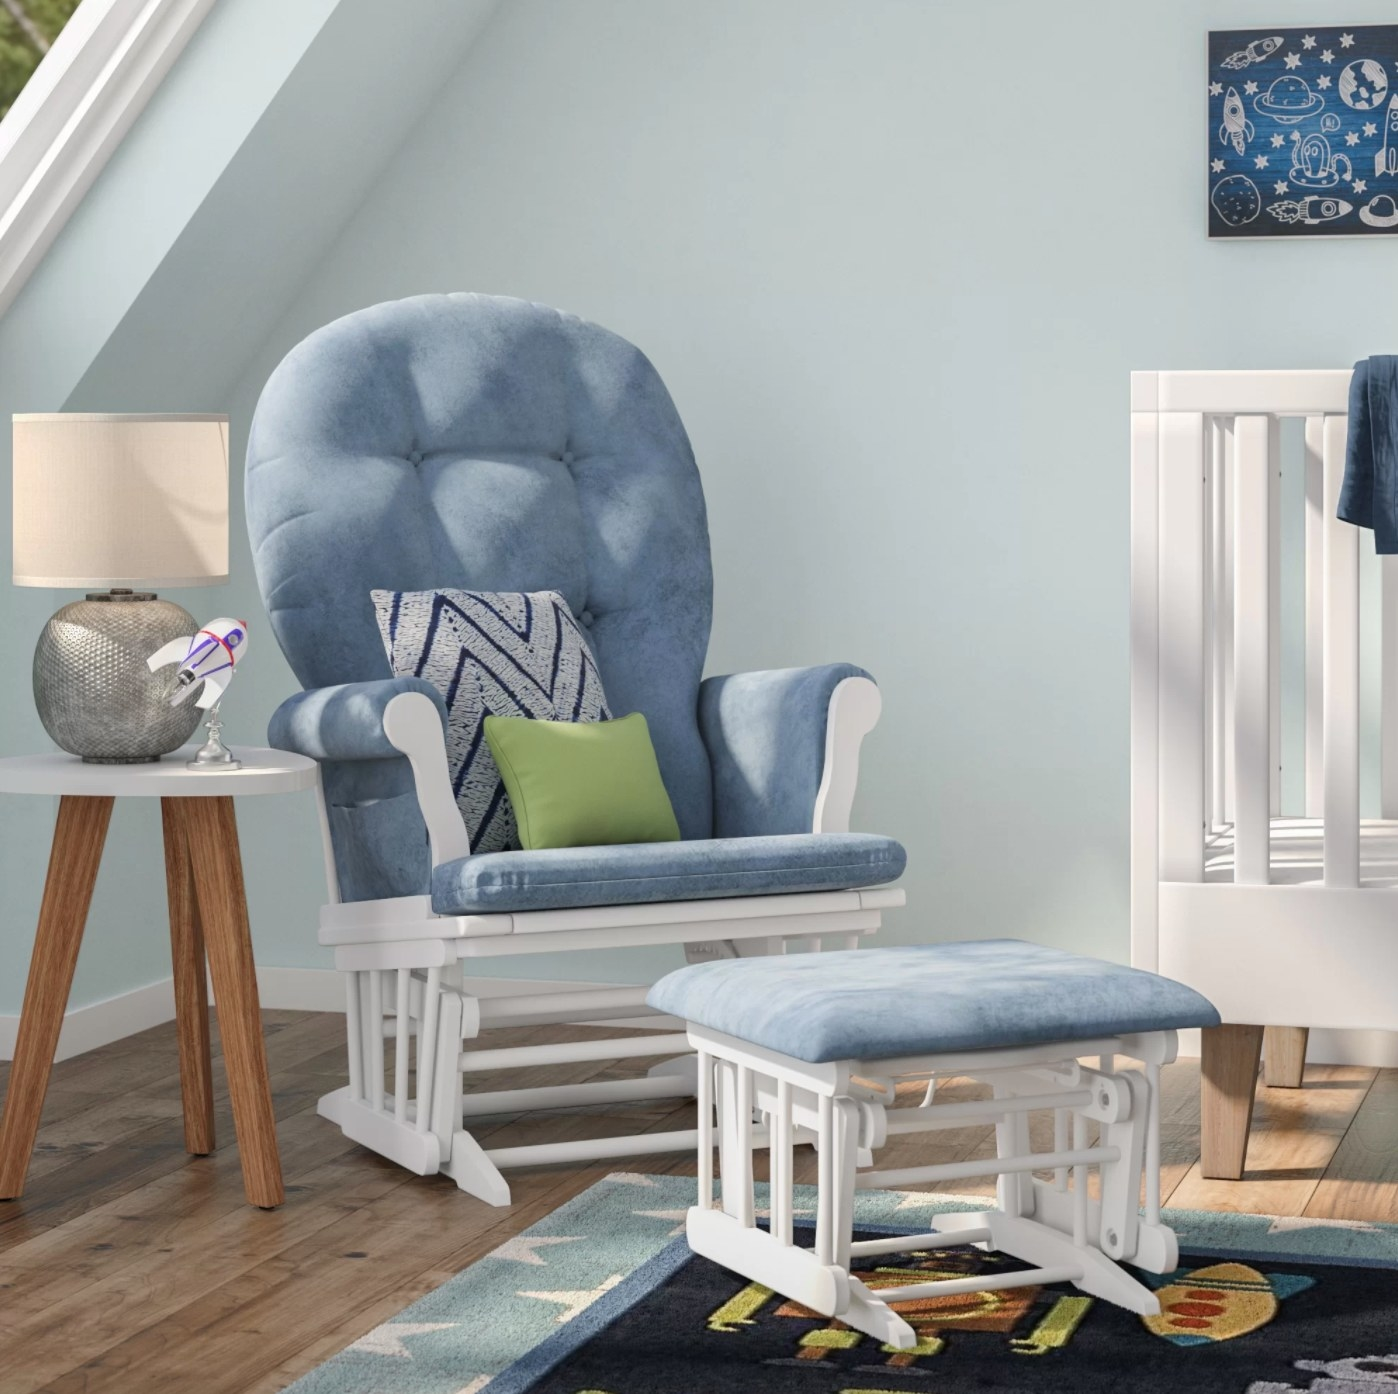 the glider and ottoman in blue and white